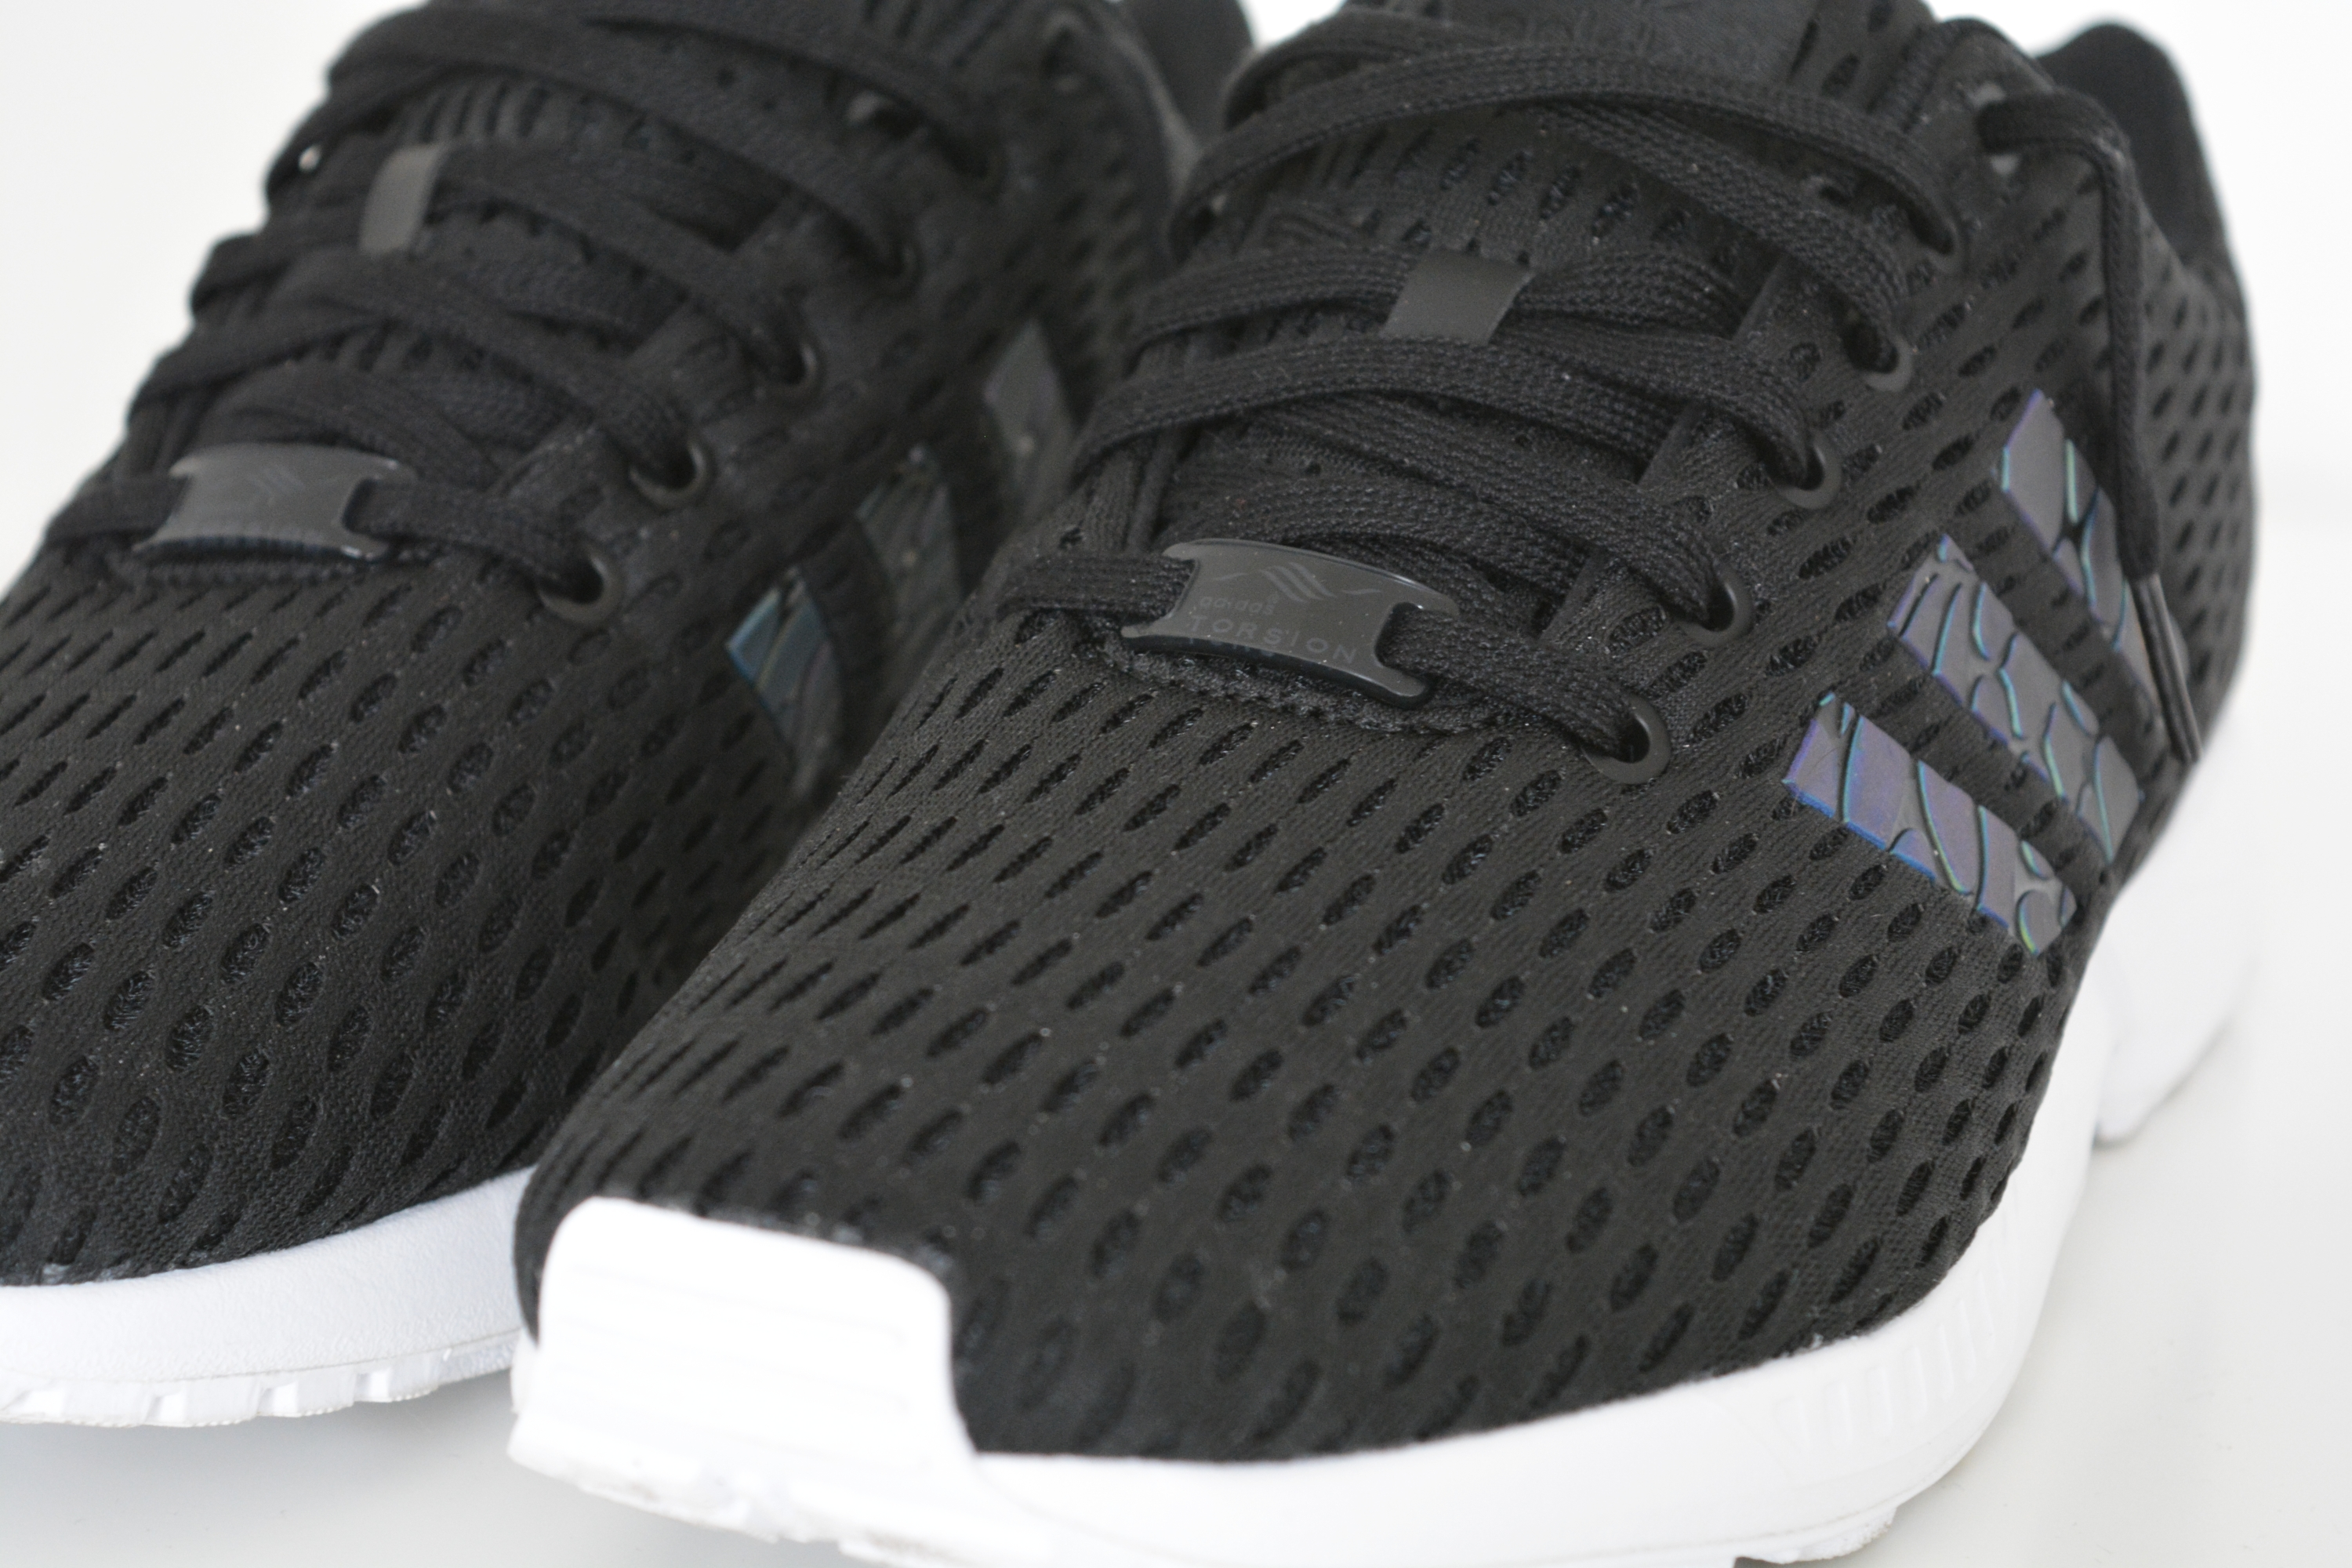 ADIDAS ORIGINALS WOMEN'S XENO ZX FLUX Sportscene